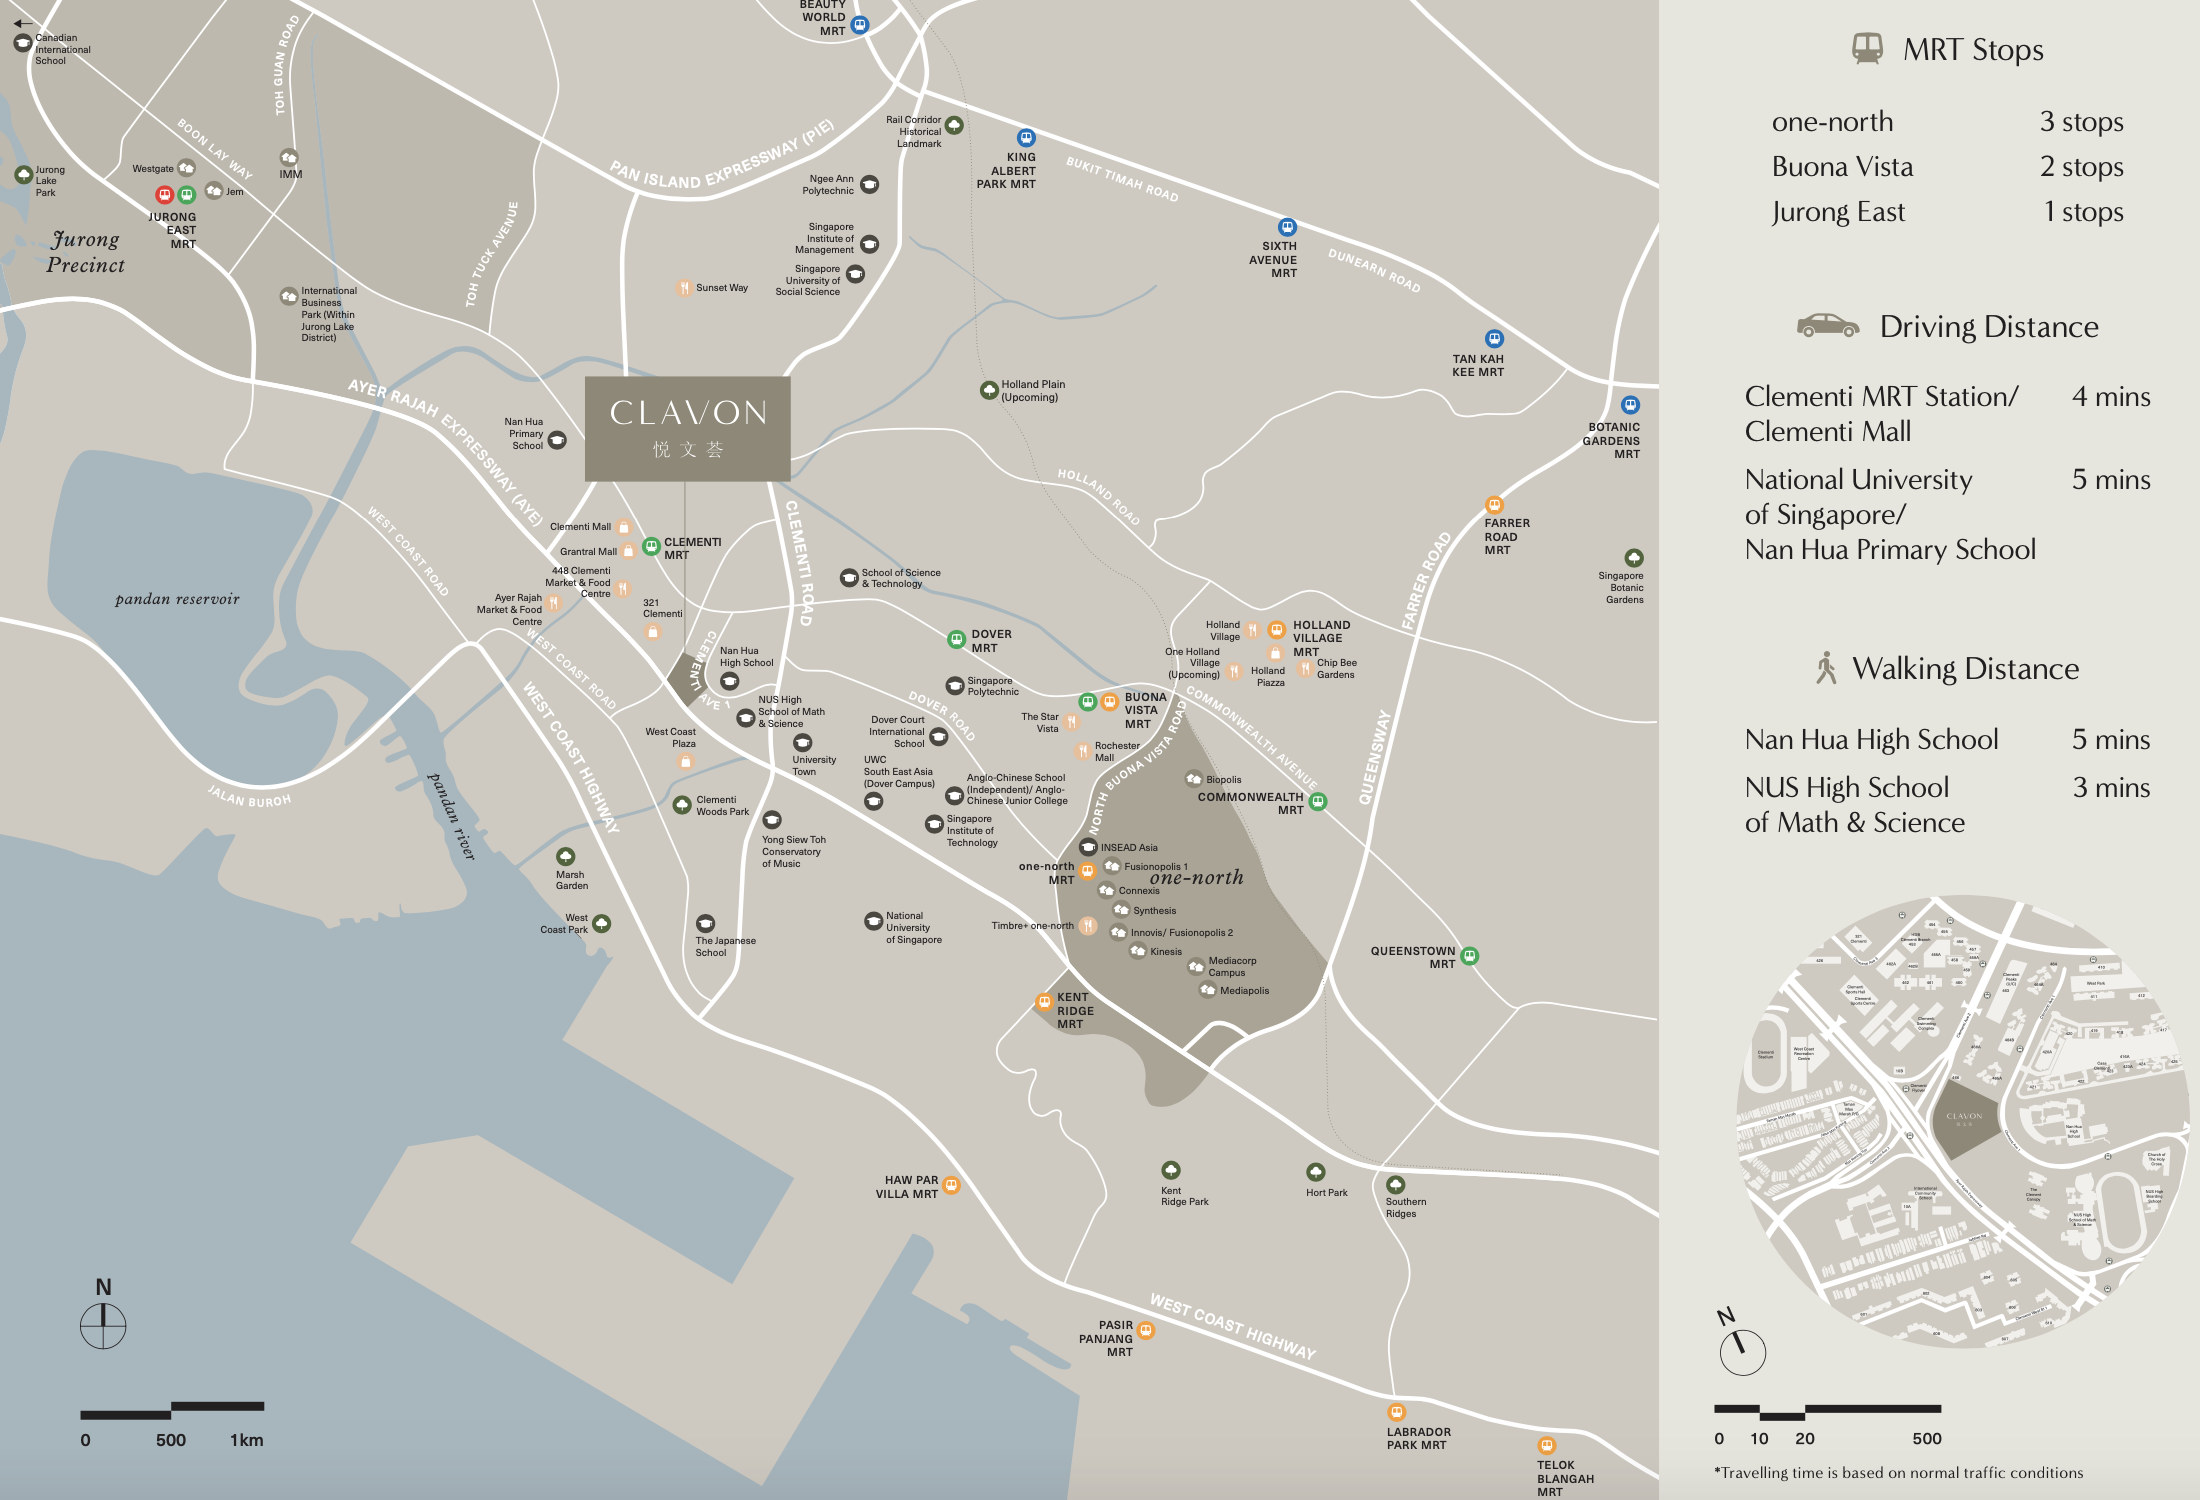 The Clavon Location Map